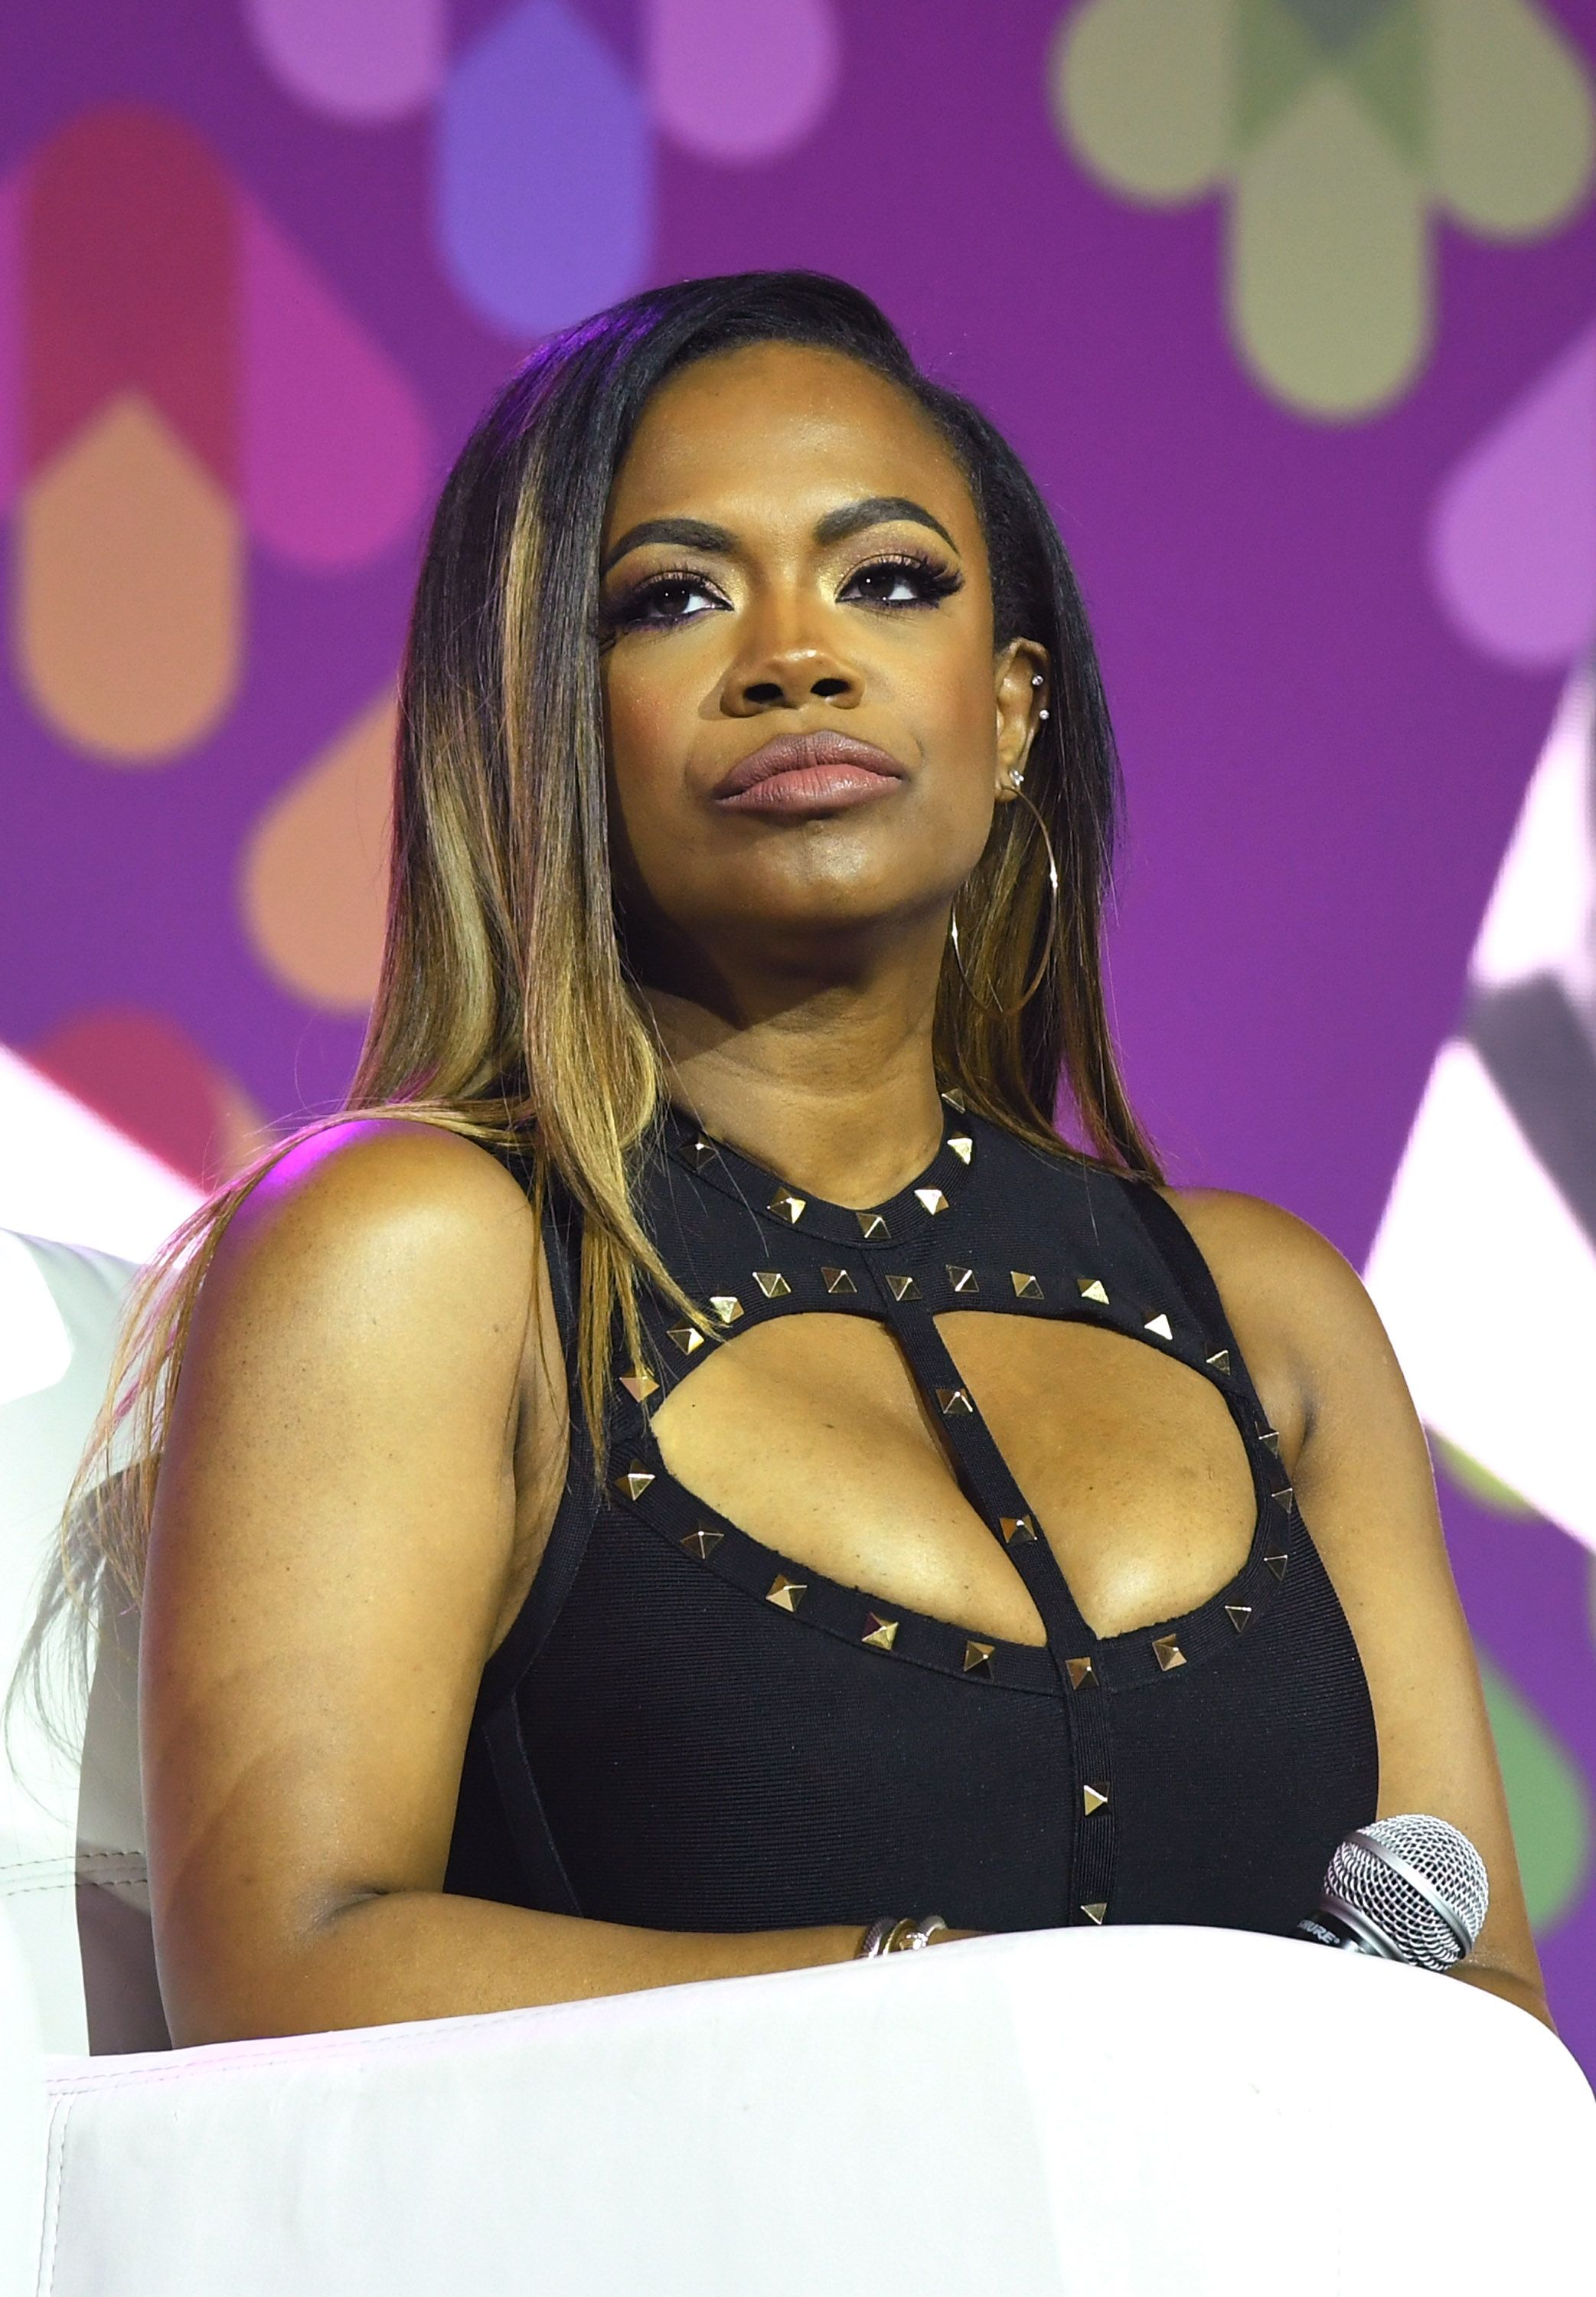 Kandi Burruss of 'Xscape' speaks onstage at the 2017 ESSENCE Festival presented by Coca-Cola at Ernest N. Morial Convention Center on July 2, 2017 in New Orleans, Louisiana. | Source: Getty Images